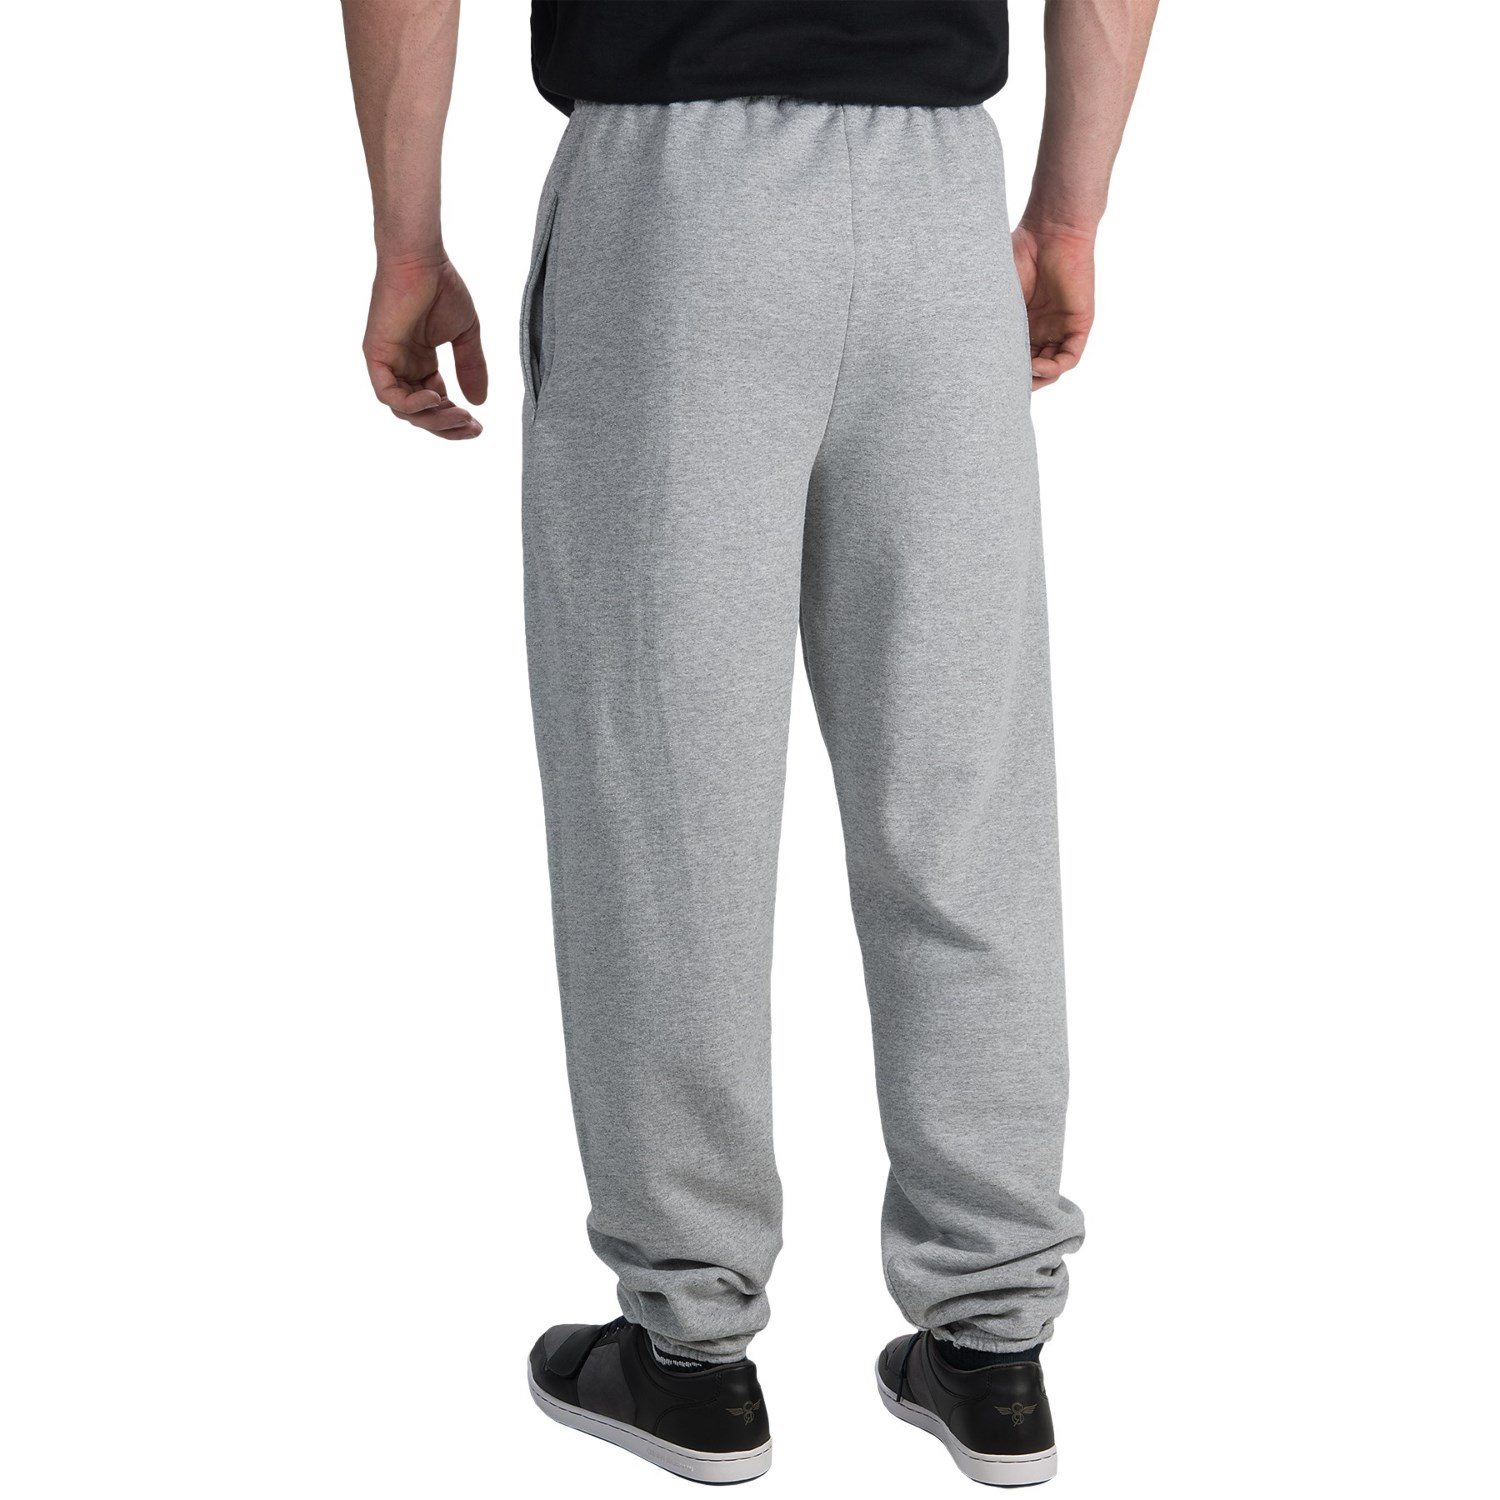 Thick % Cotton 20oz Fleece SWEAT PANTS for Women. CottonMill Brand - Super warm and comfy % Cotton 20oz Fleece Sweat Pants for Women! MADE IN CANADA Exclusivel $ Details or Purchase. Women's Cotton 8oz Campcloth WINTER Play Pant. Thousand Mile - Heavier weight 8 .